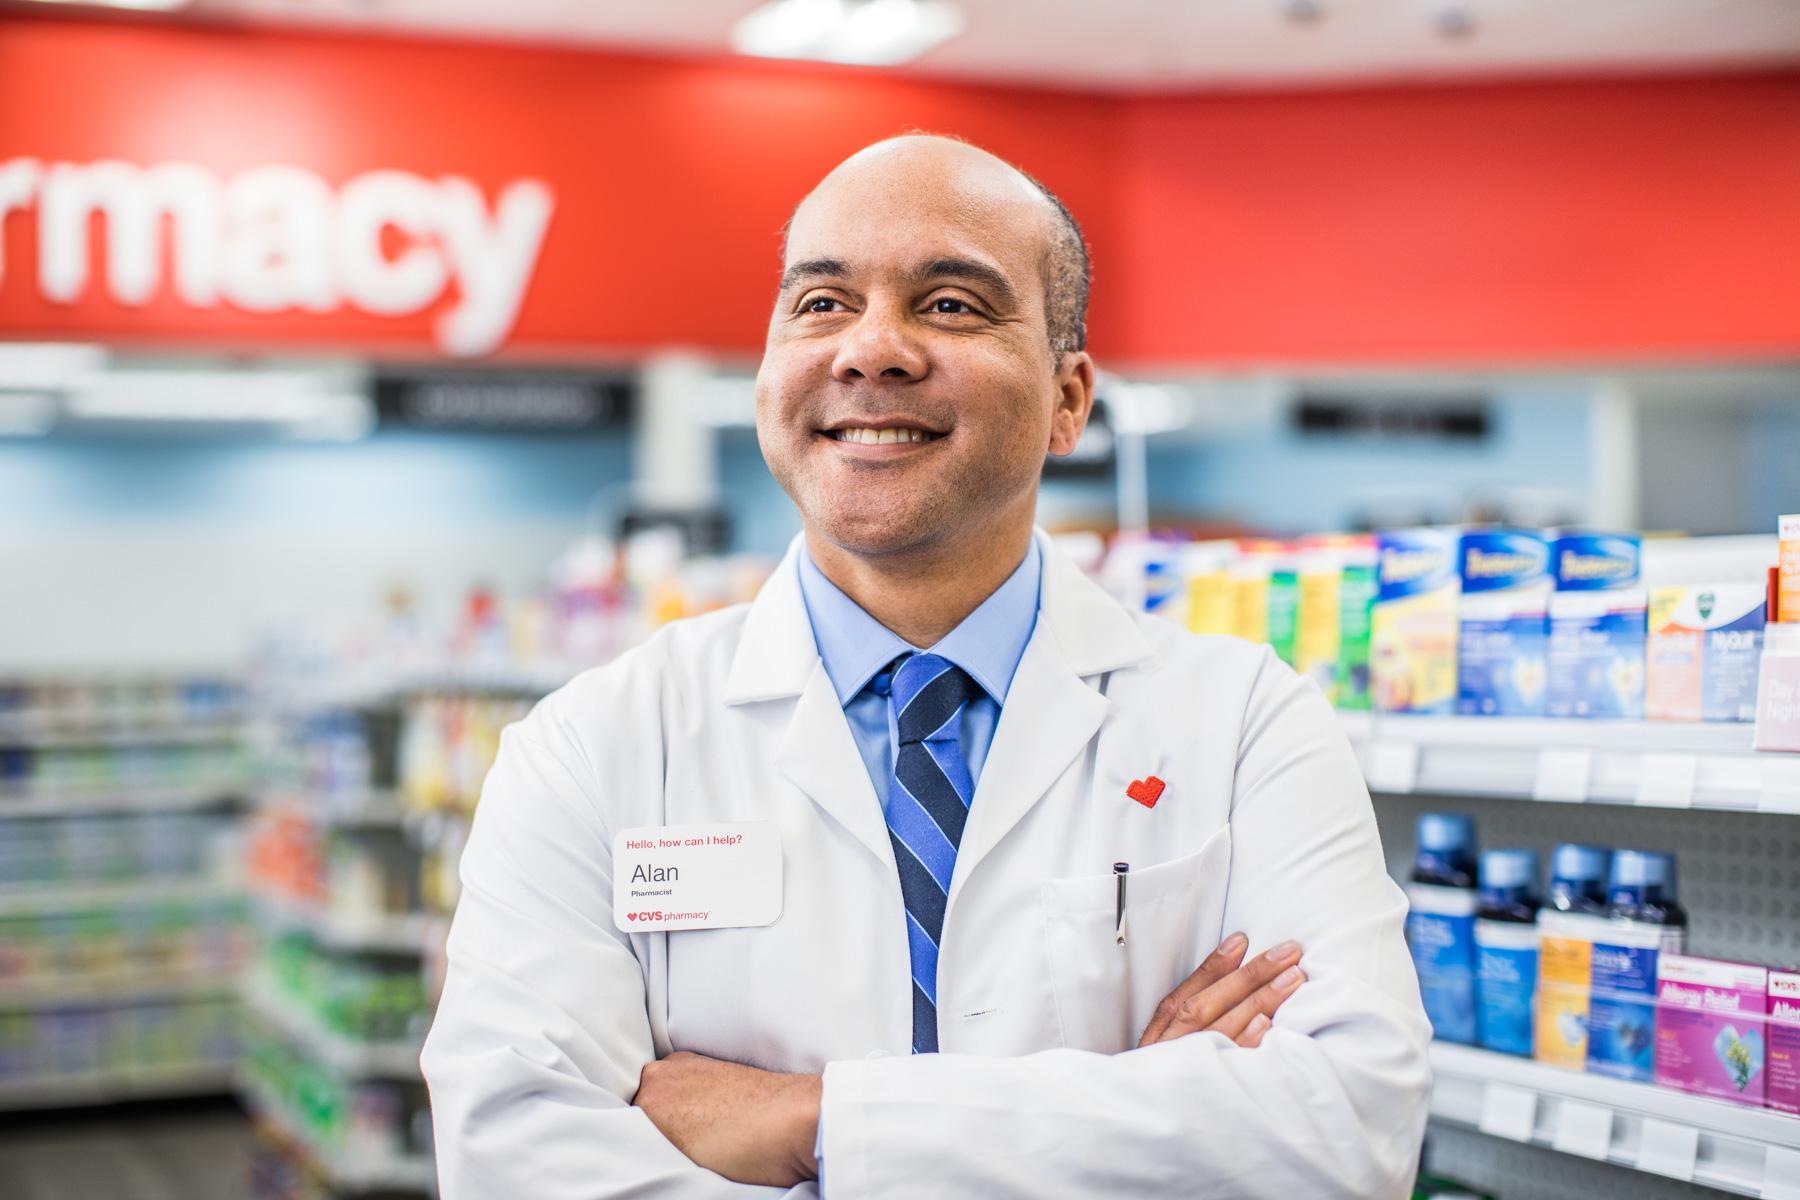 0929_20160426_CVS_01_PHARMACIST_PORTRAIT_A_0843_